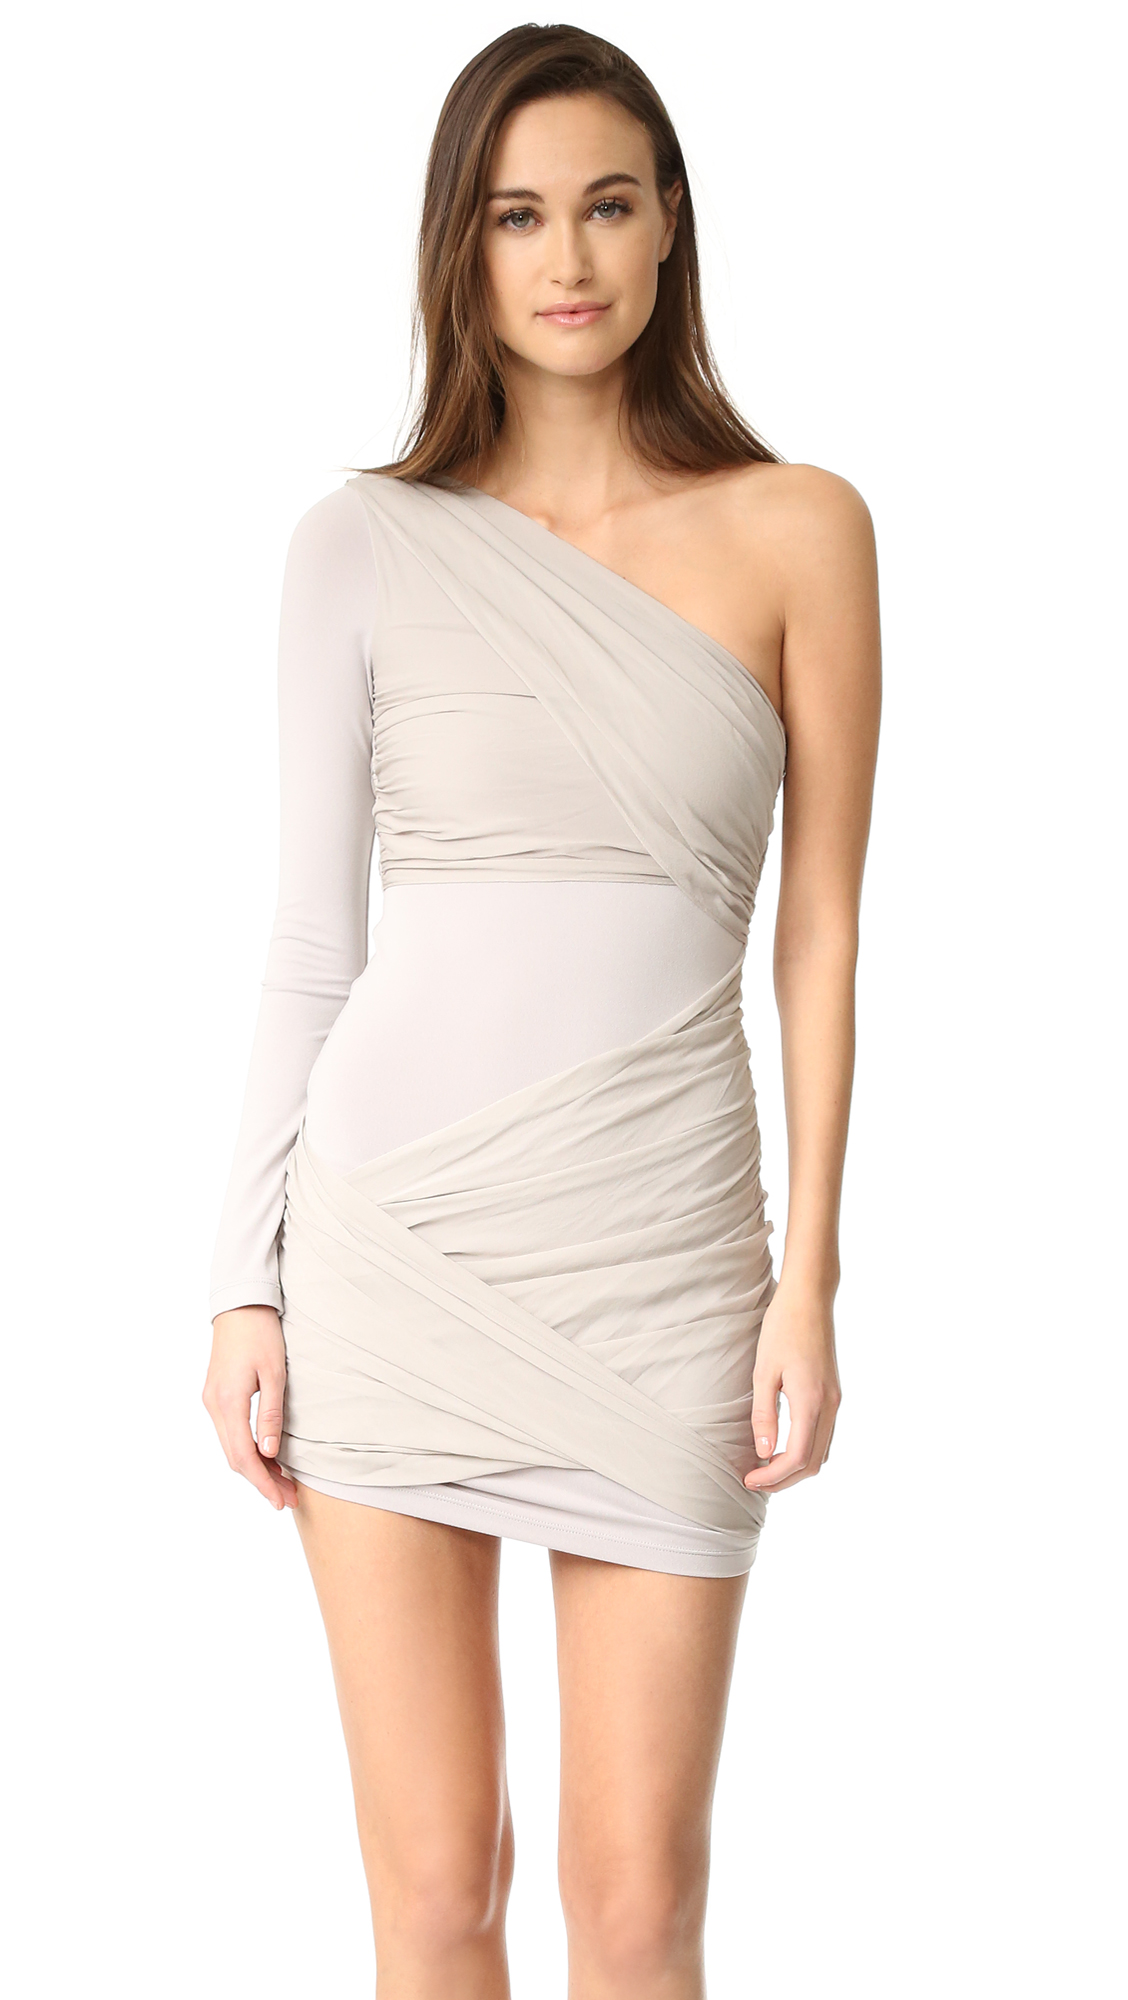 Alice + Olivia Crissy Wrap One Sleeve Goddess Dress - Light Grey